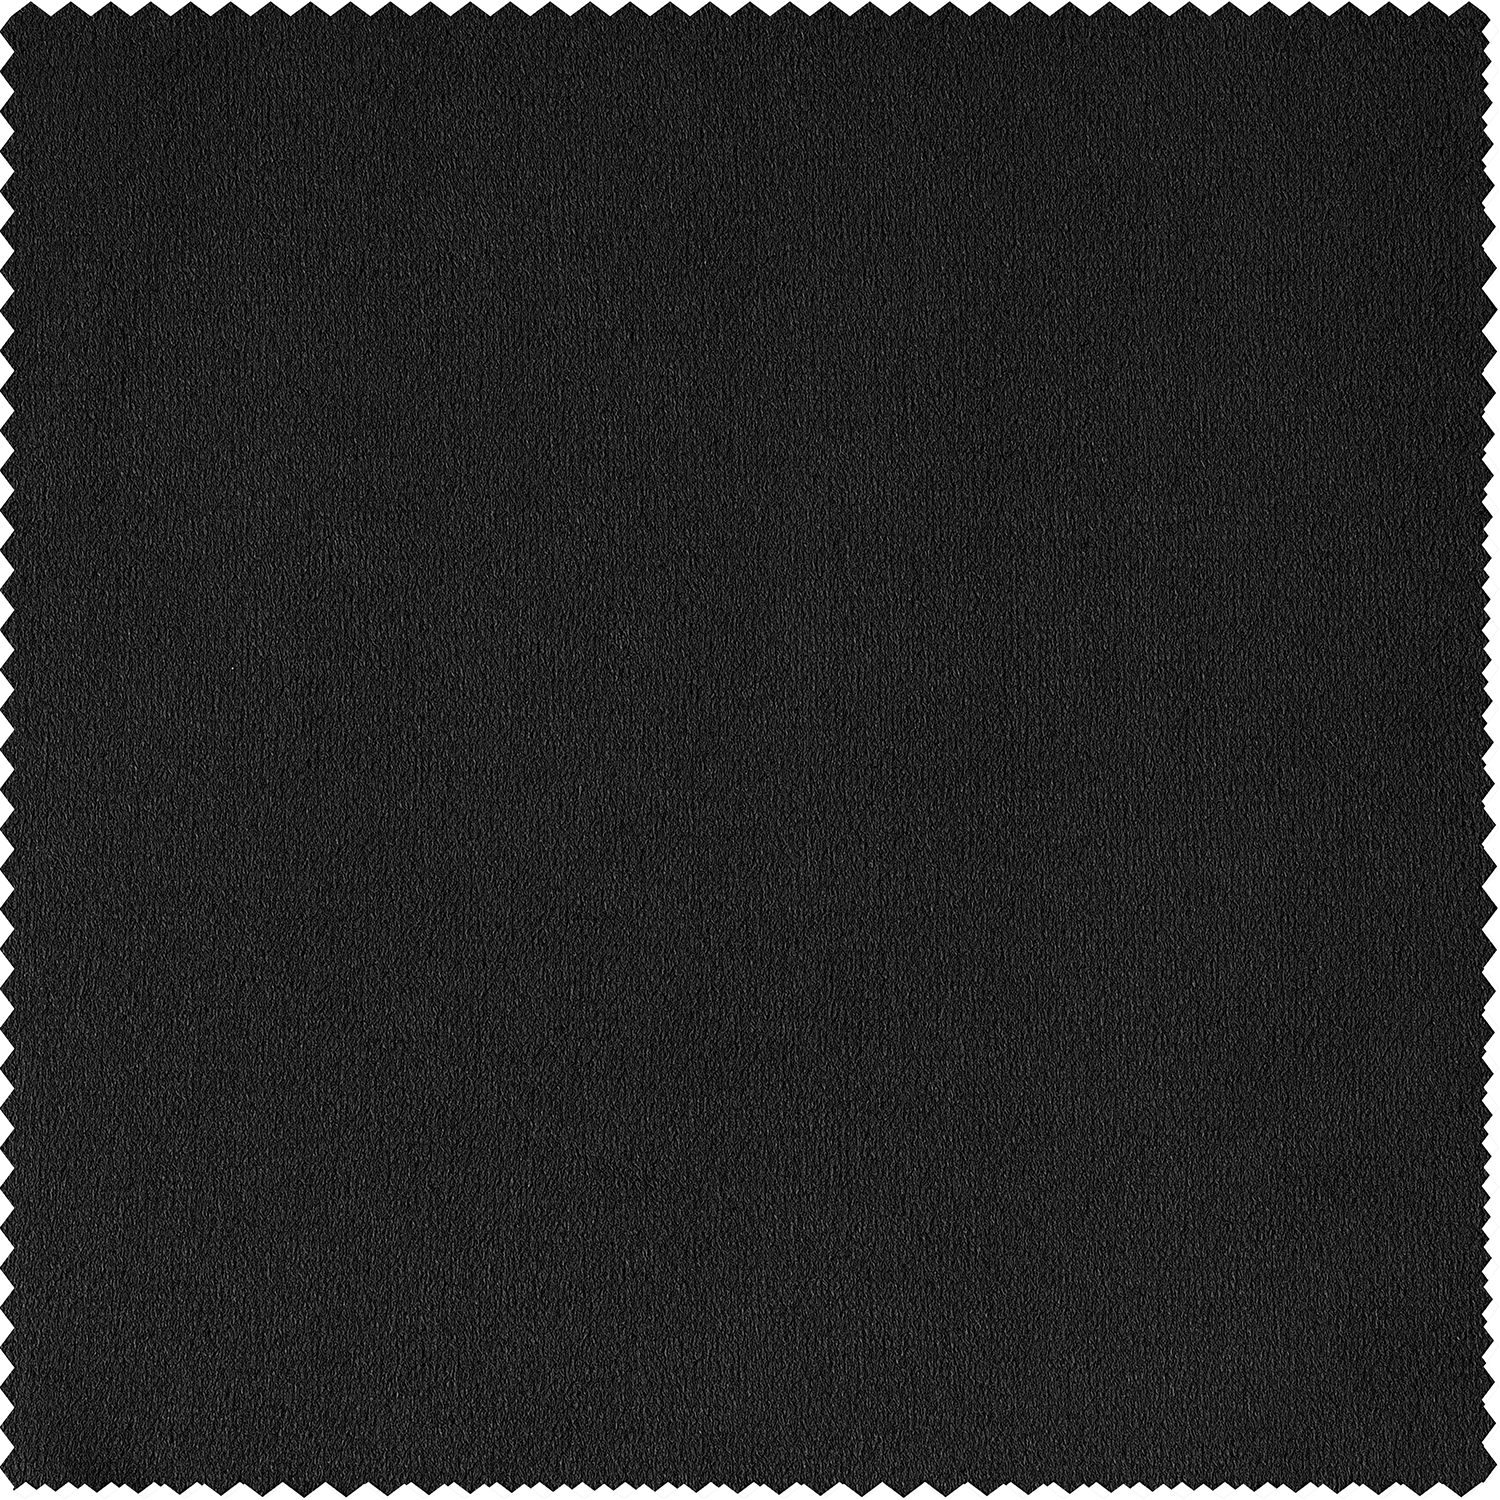 Signature Warm Black Blackout Velvet Fabric